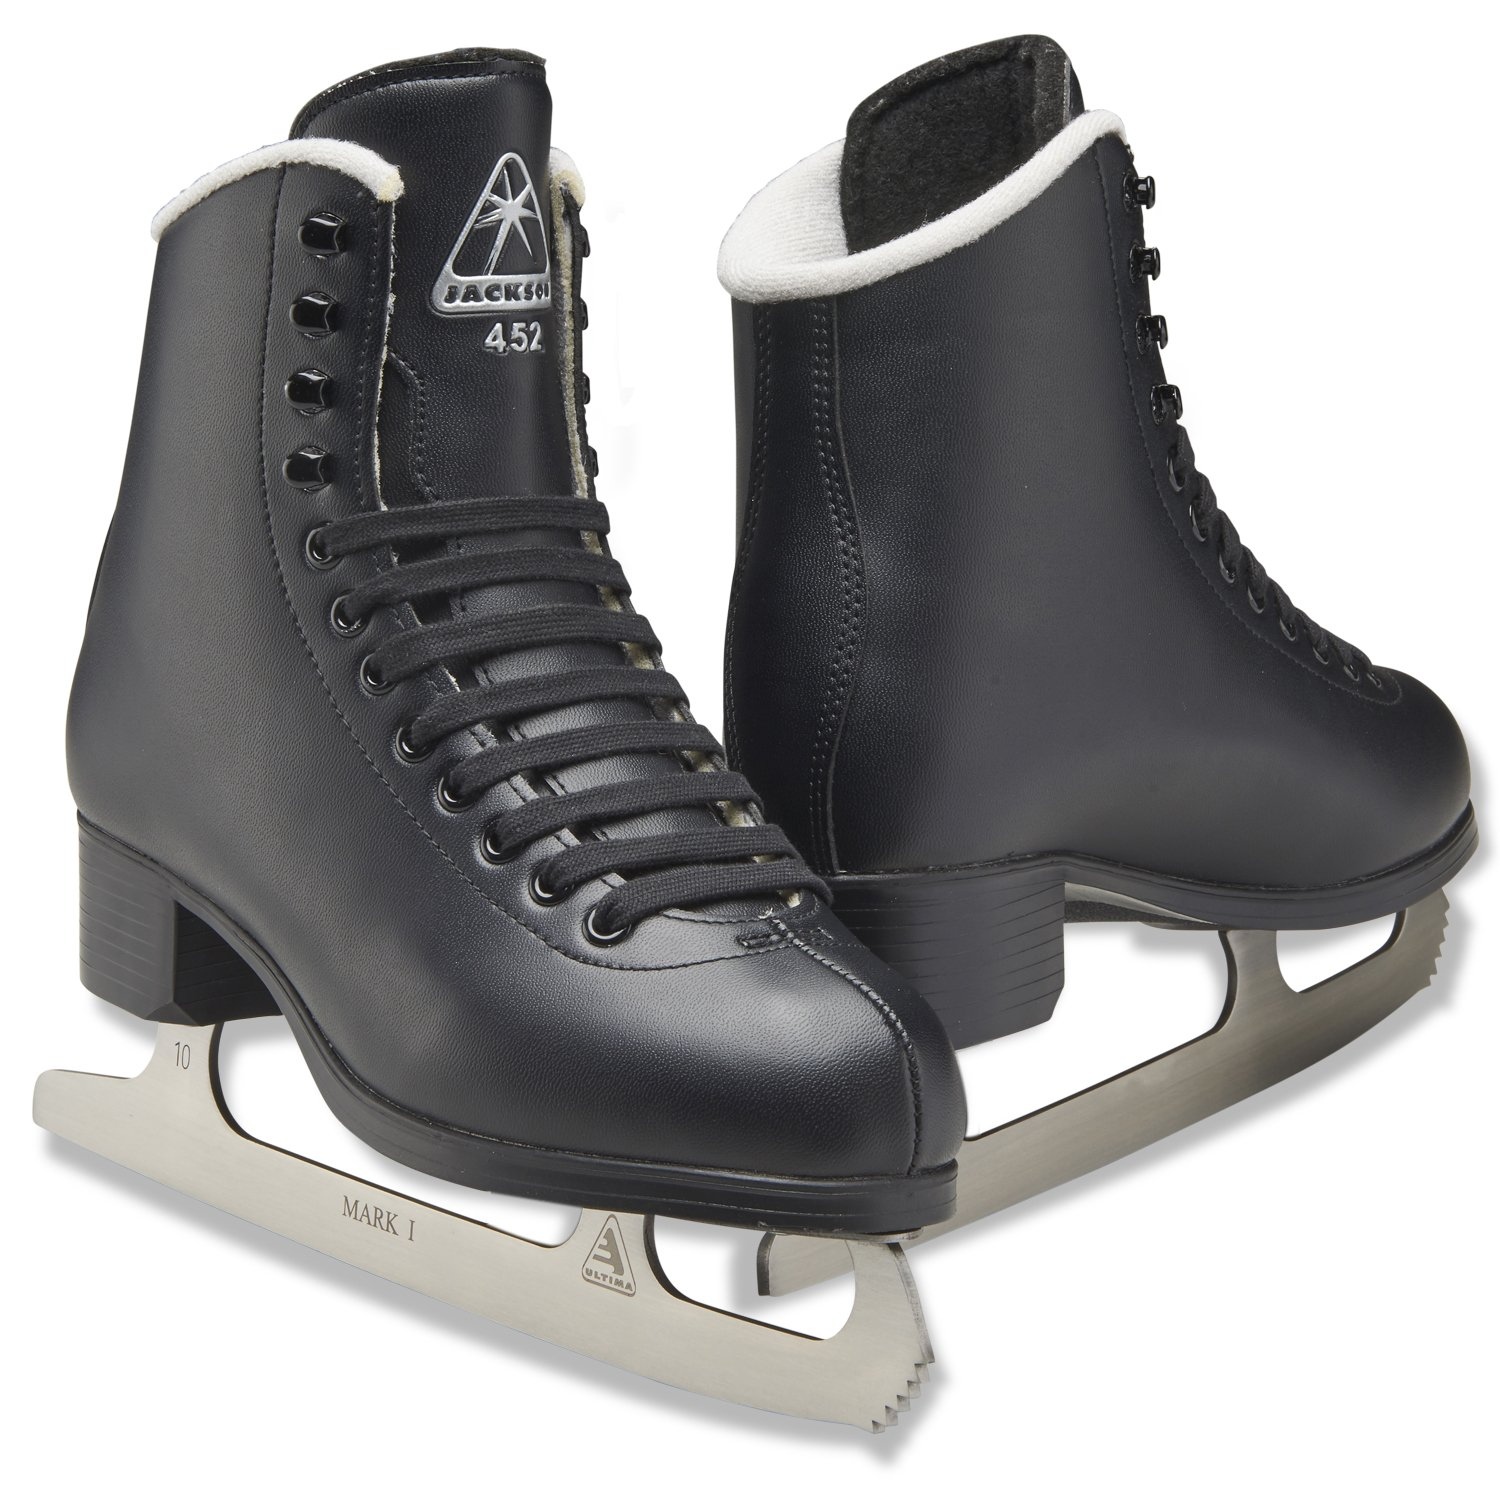 Jackson Ultima JS452 Black Mens Figure Ice Skates for Men/Size: Adult 8 by Jackson Ultima